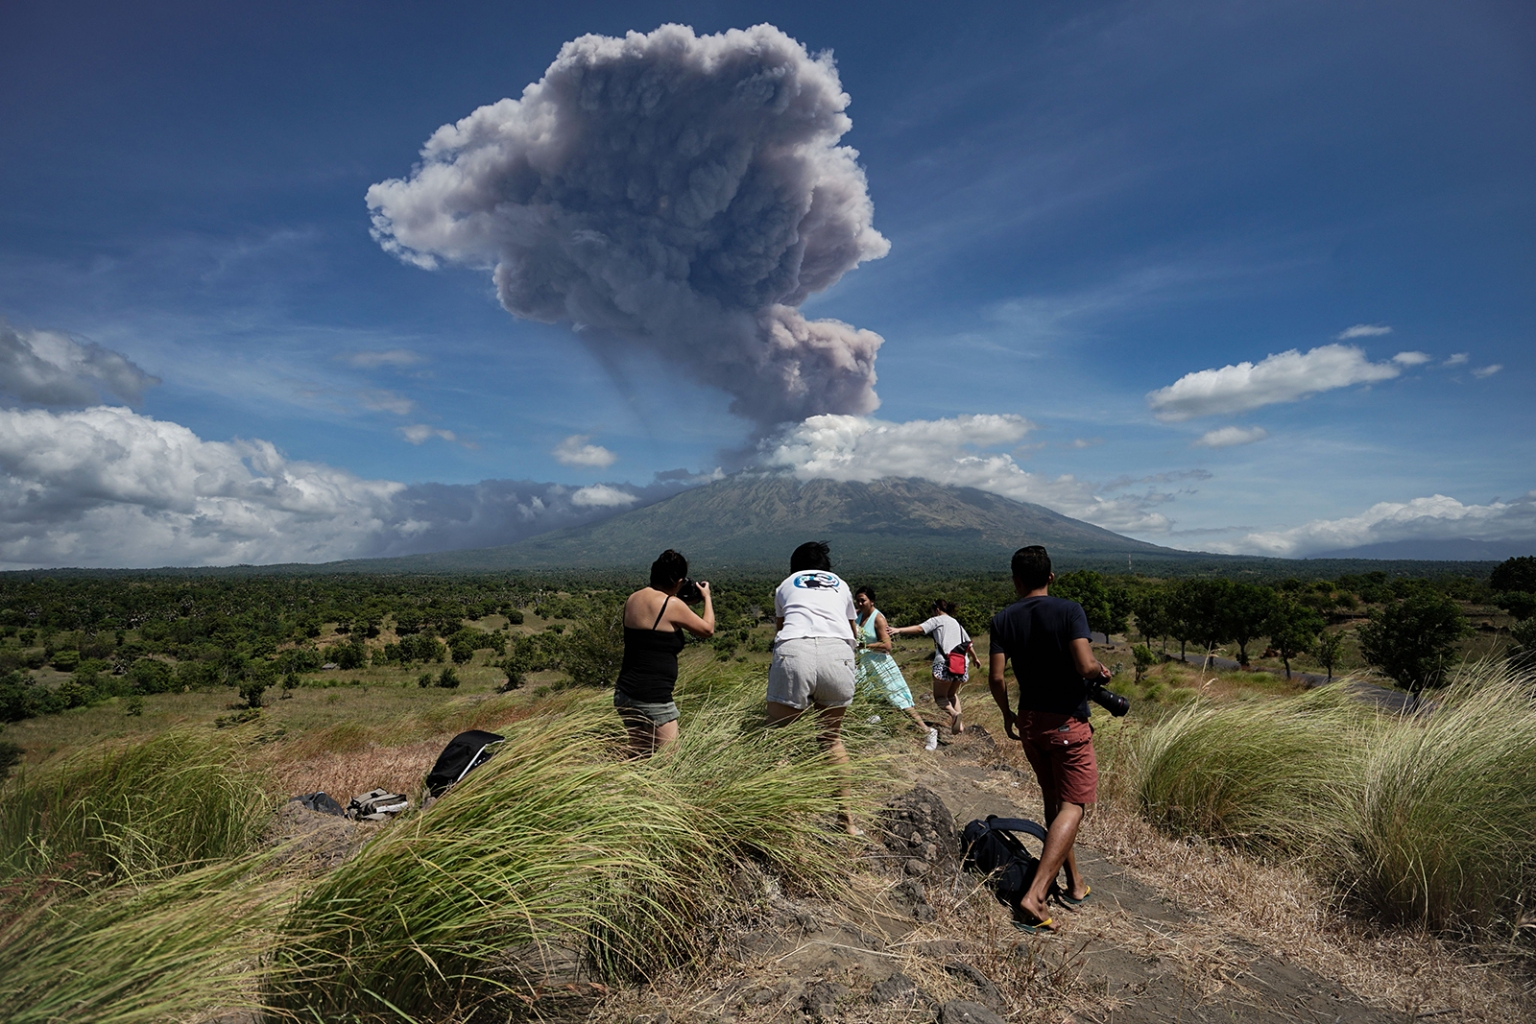 Mount Agung volcano releases a plume of ash, as seen from the Kubu subdistrict in Karangasem Regency on Indonesia's resort island of Bali on May 31. MADE ALIT SUANTARA/AFP/Getty Images